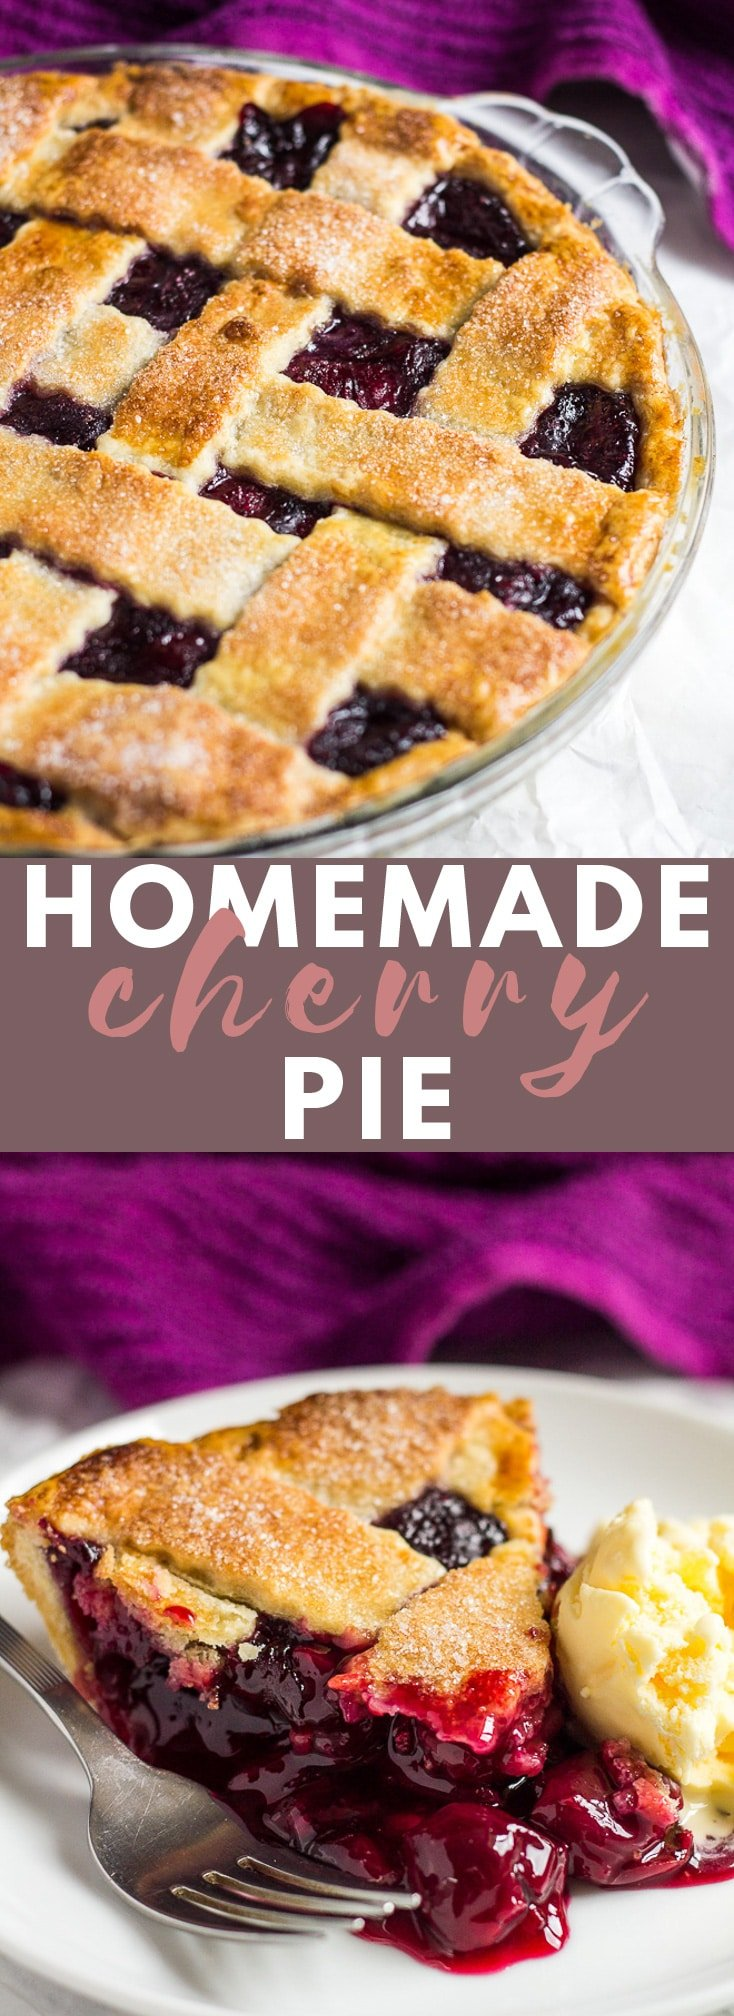 Homemade Cherry Pie - Deliciously sweet cherry pie made with a flaky, all-butter crust, and a homemade cherry filling!